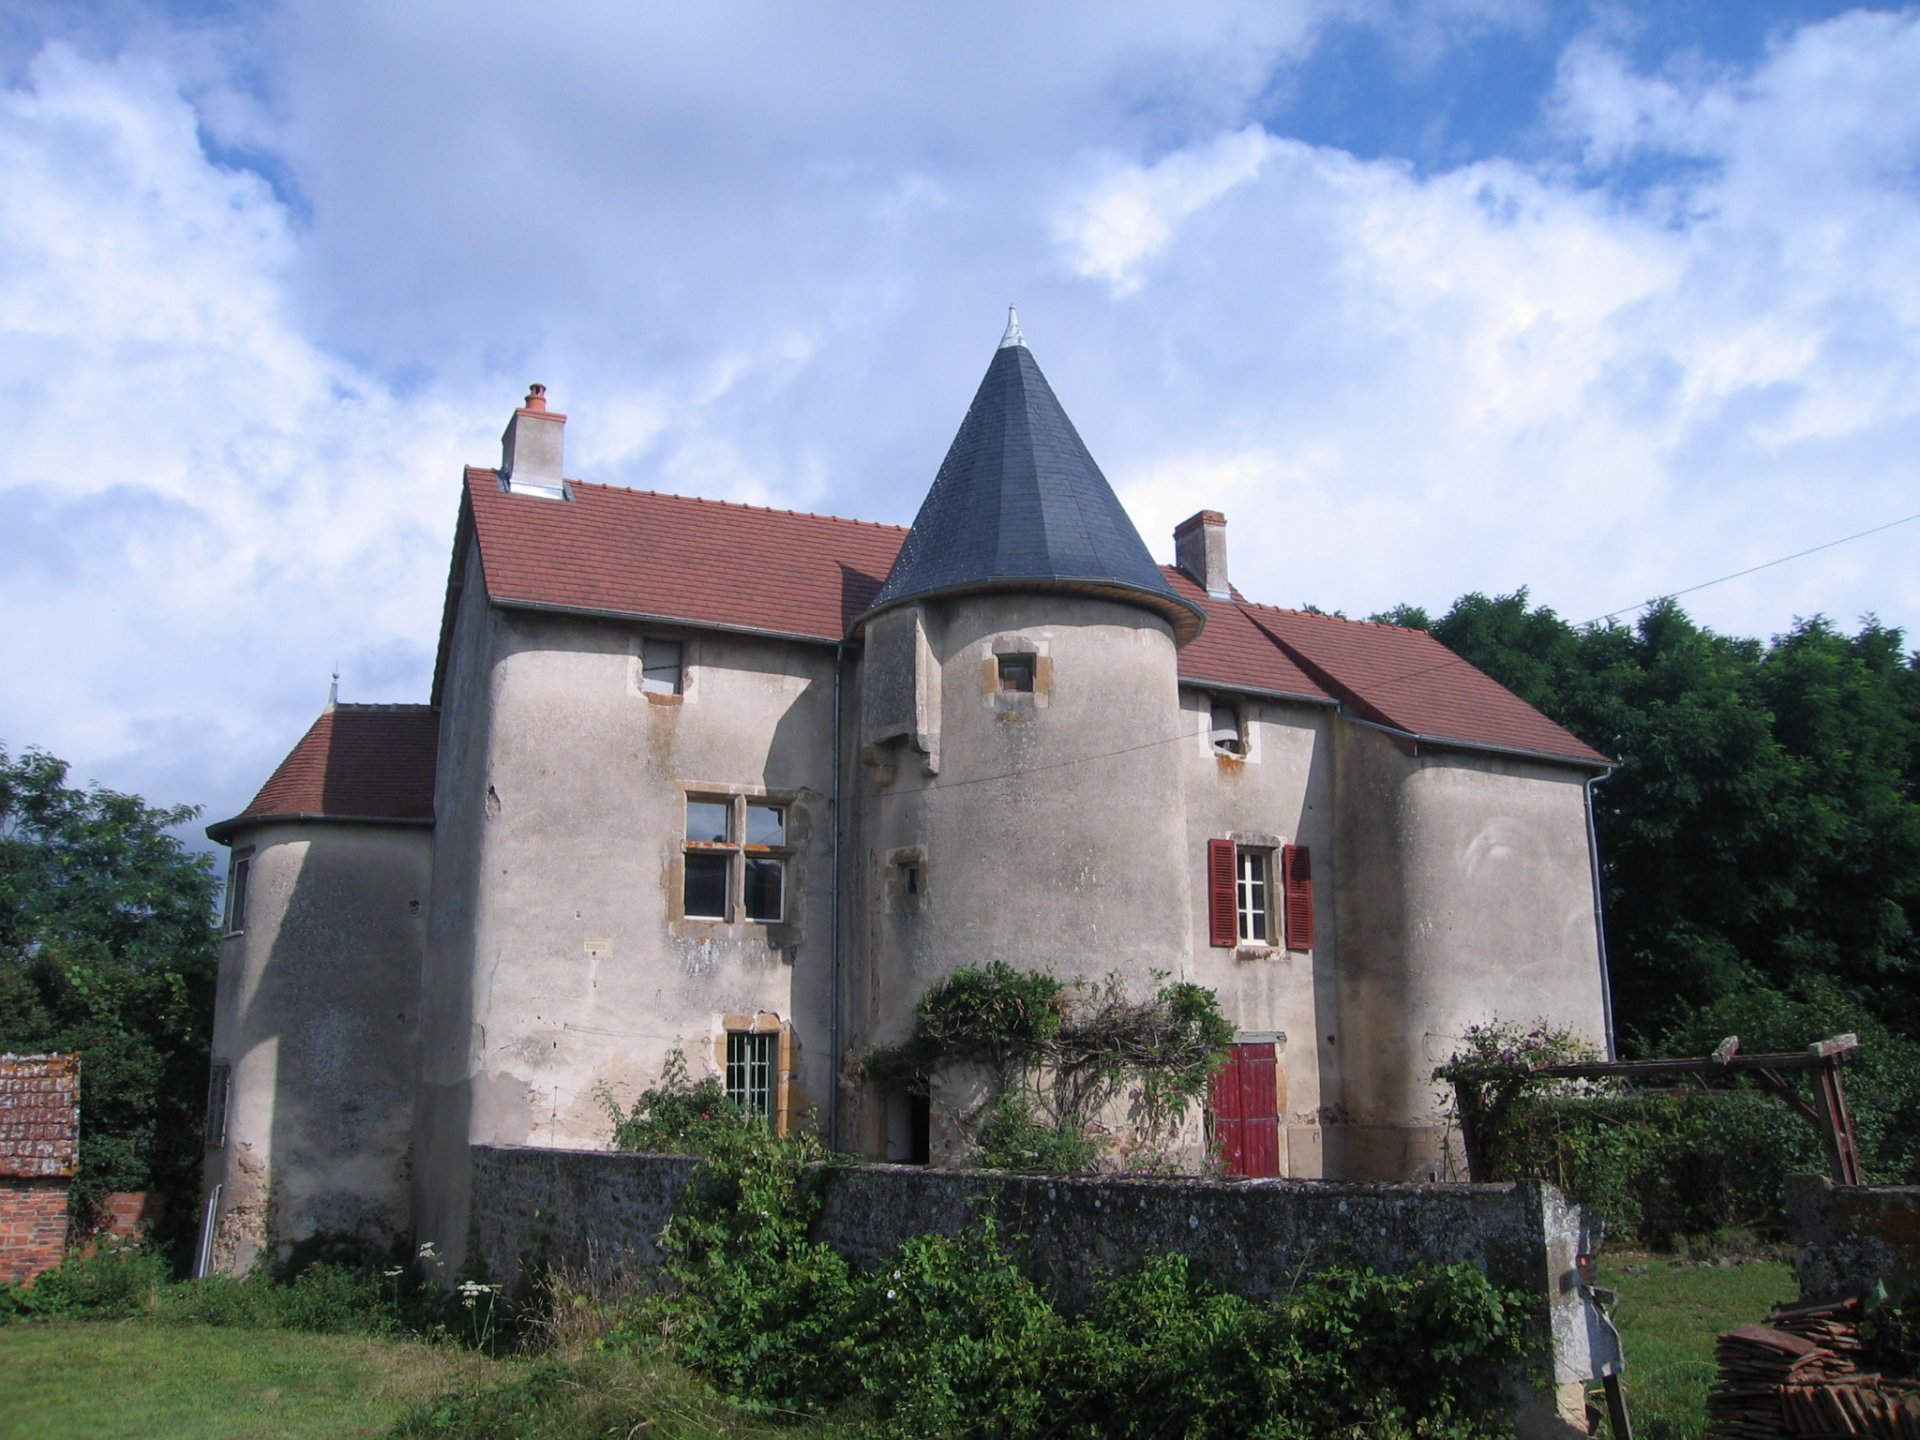 12th century castle for sale in Burgundy